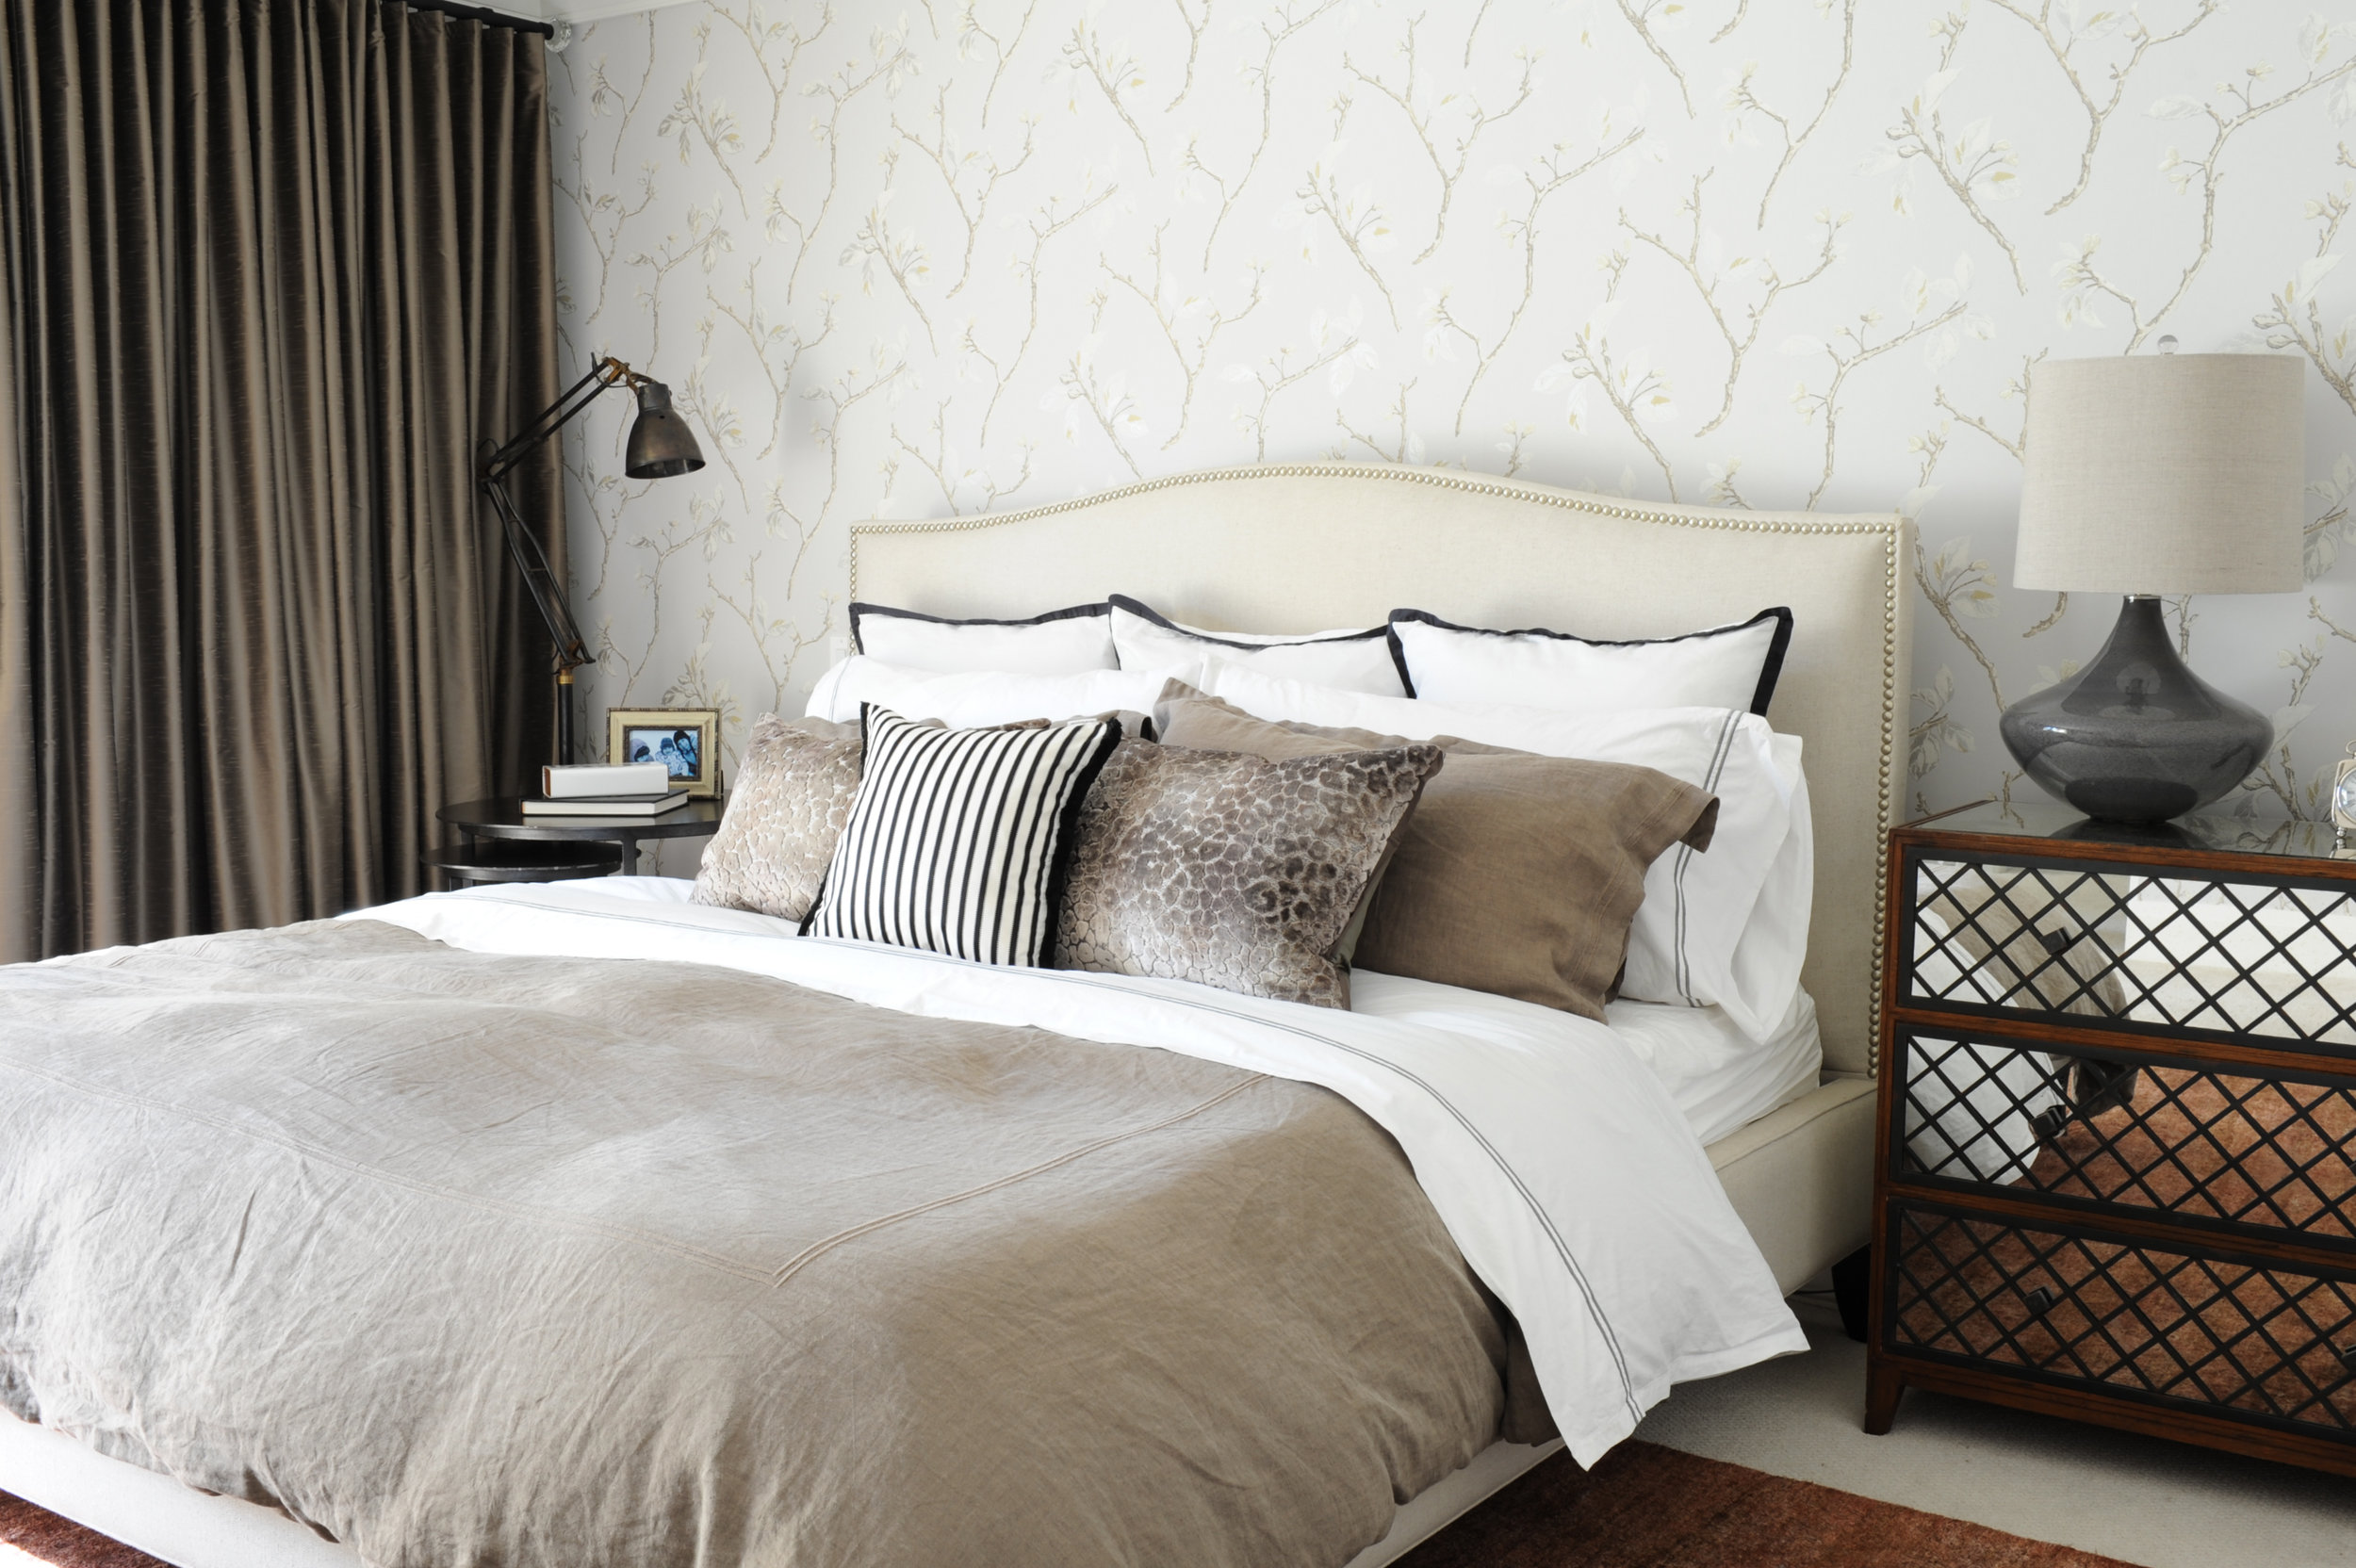 3 tips for investing in timeless furniture. West Vancouver Master Bedroom, Interior Design by Nyla Free Designs Inc., Calgary Canada